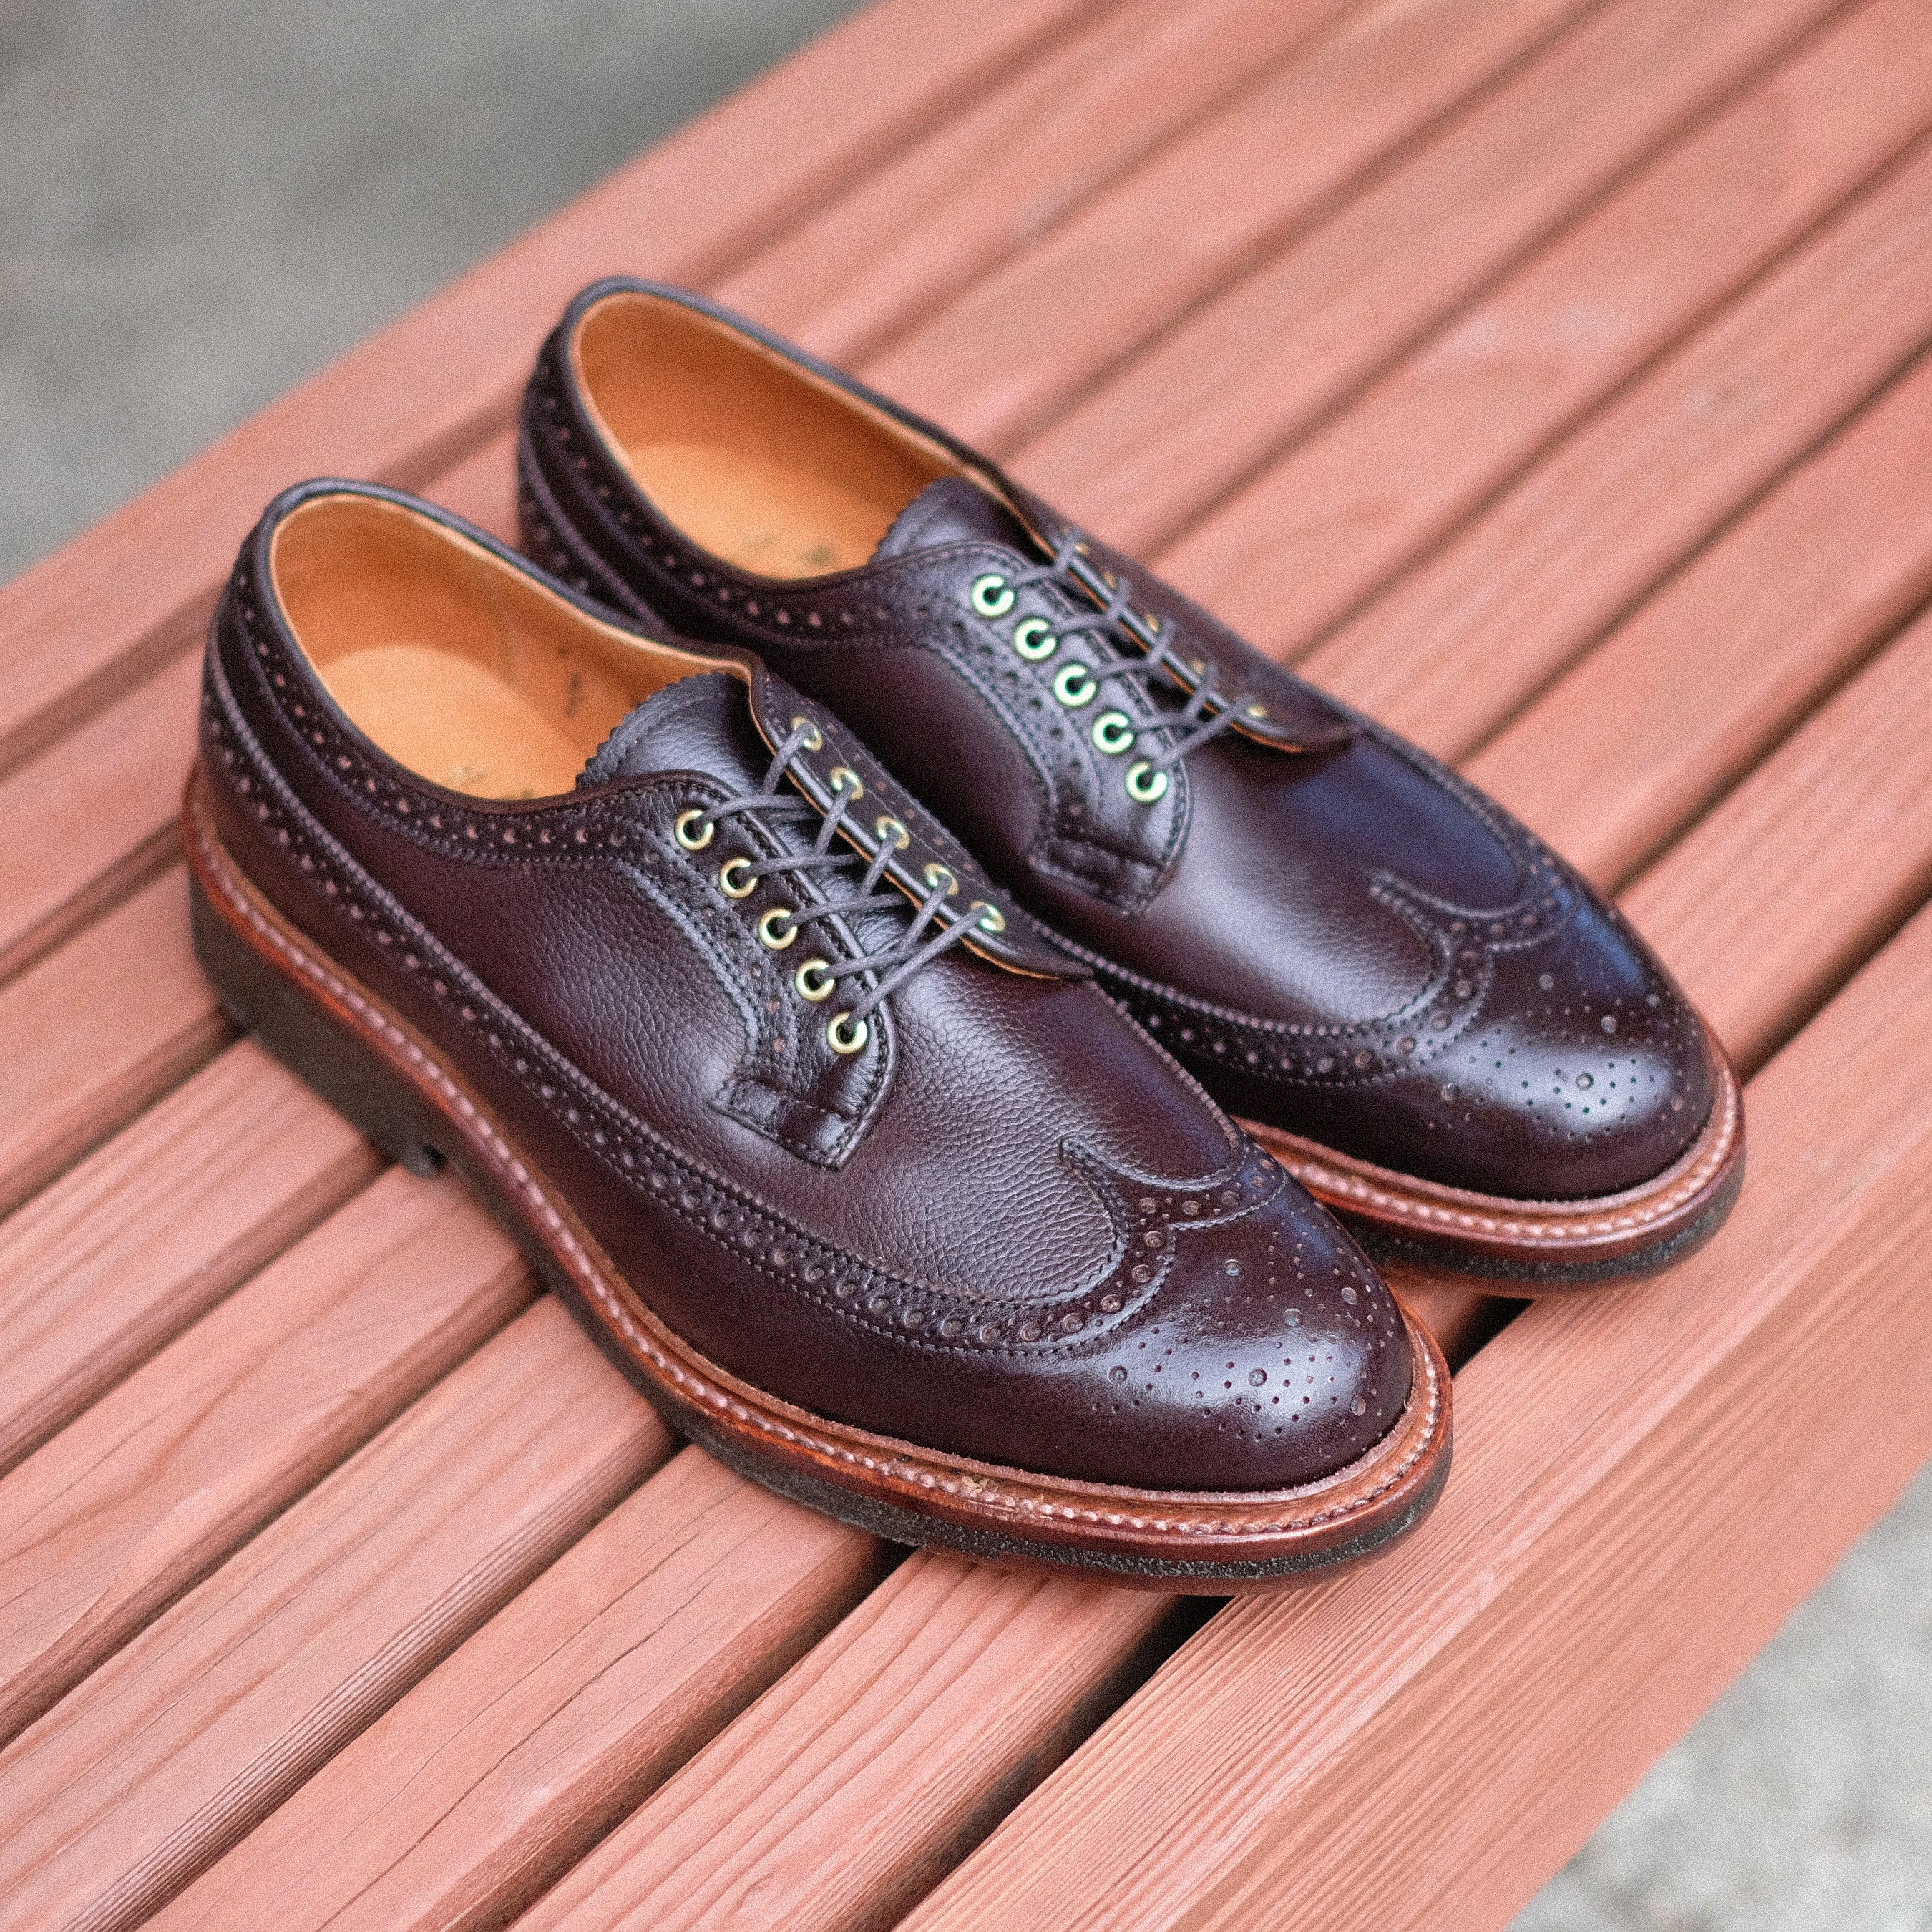 Alden x Brogue Long Wing Blucher